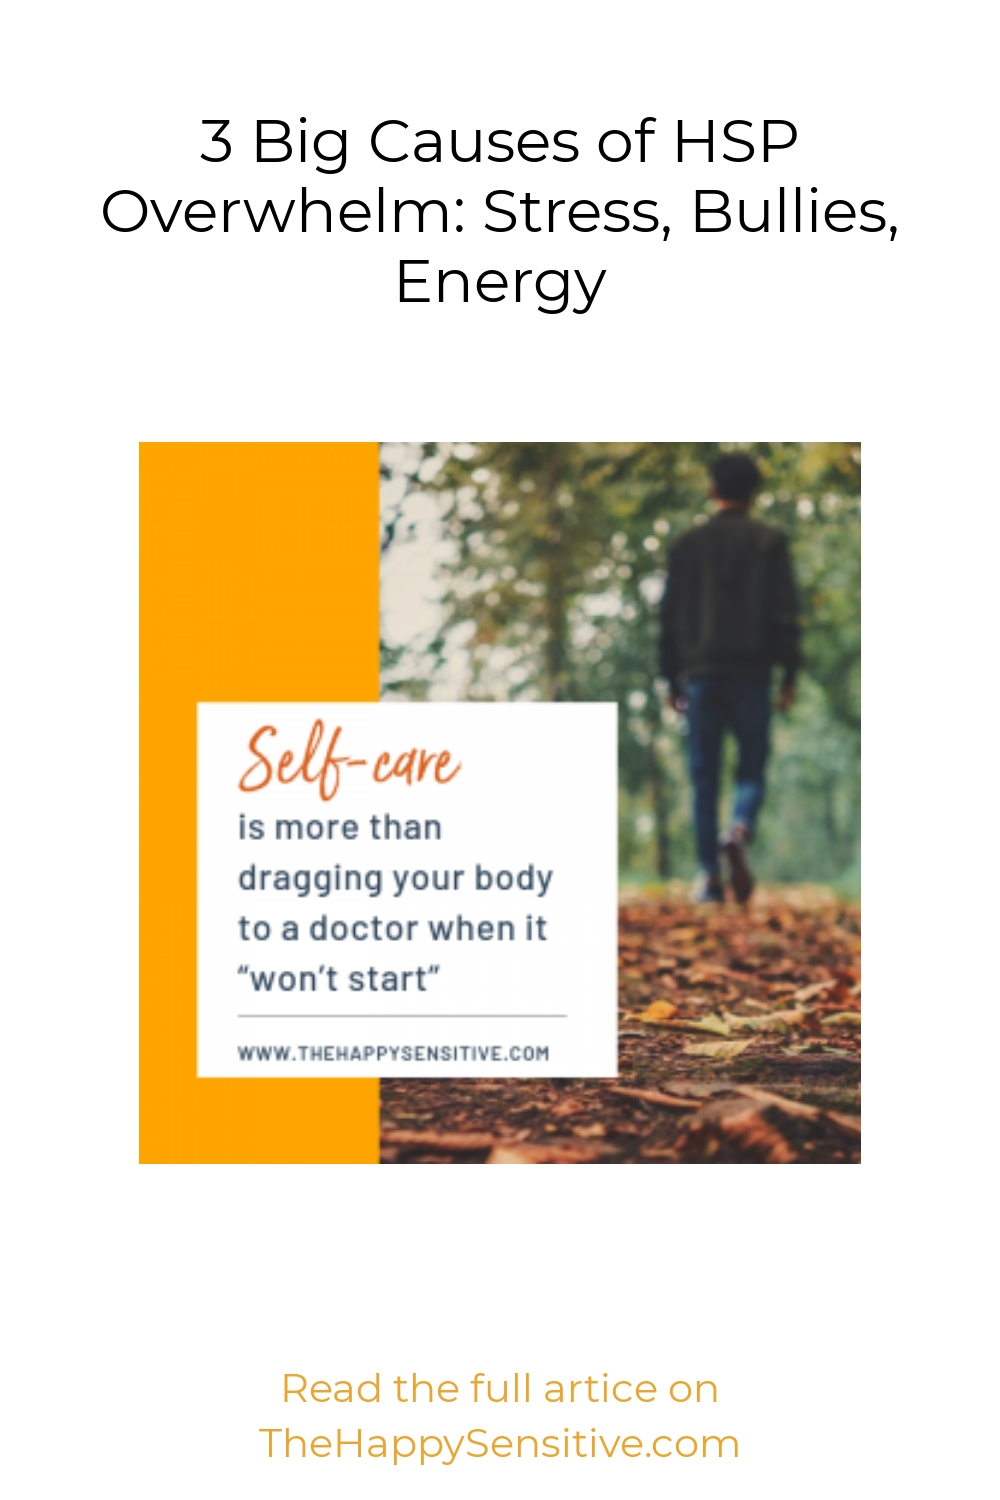 3 Big Causes of HSP Overwhelm: Stress, Bullies, Energy